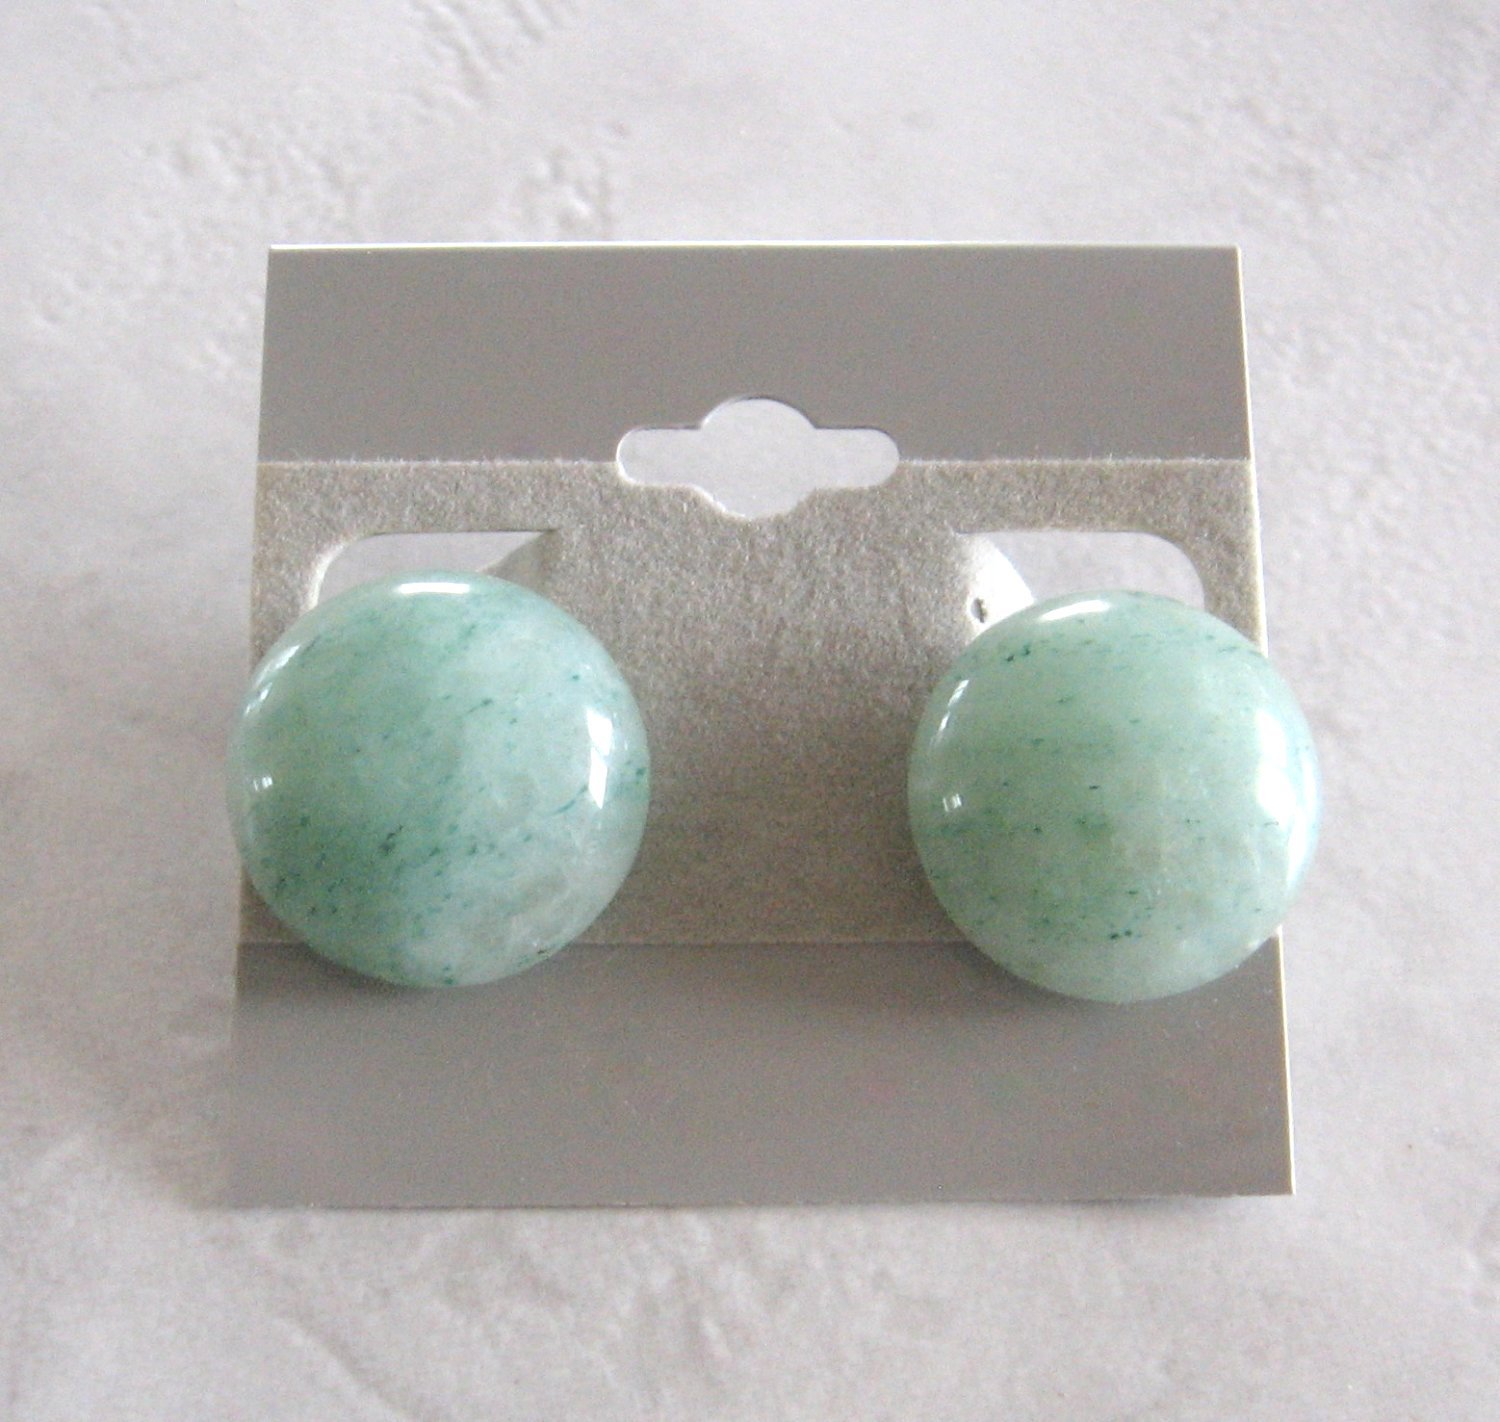 Green Agate Stone Quartz Round Cabochon Clip On Earrings 1970's Vintage Jewelry